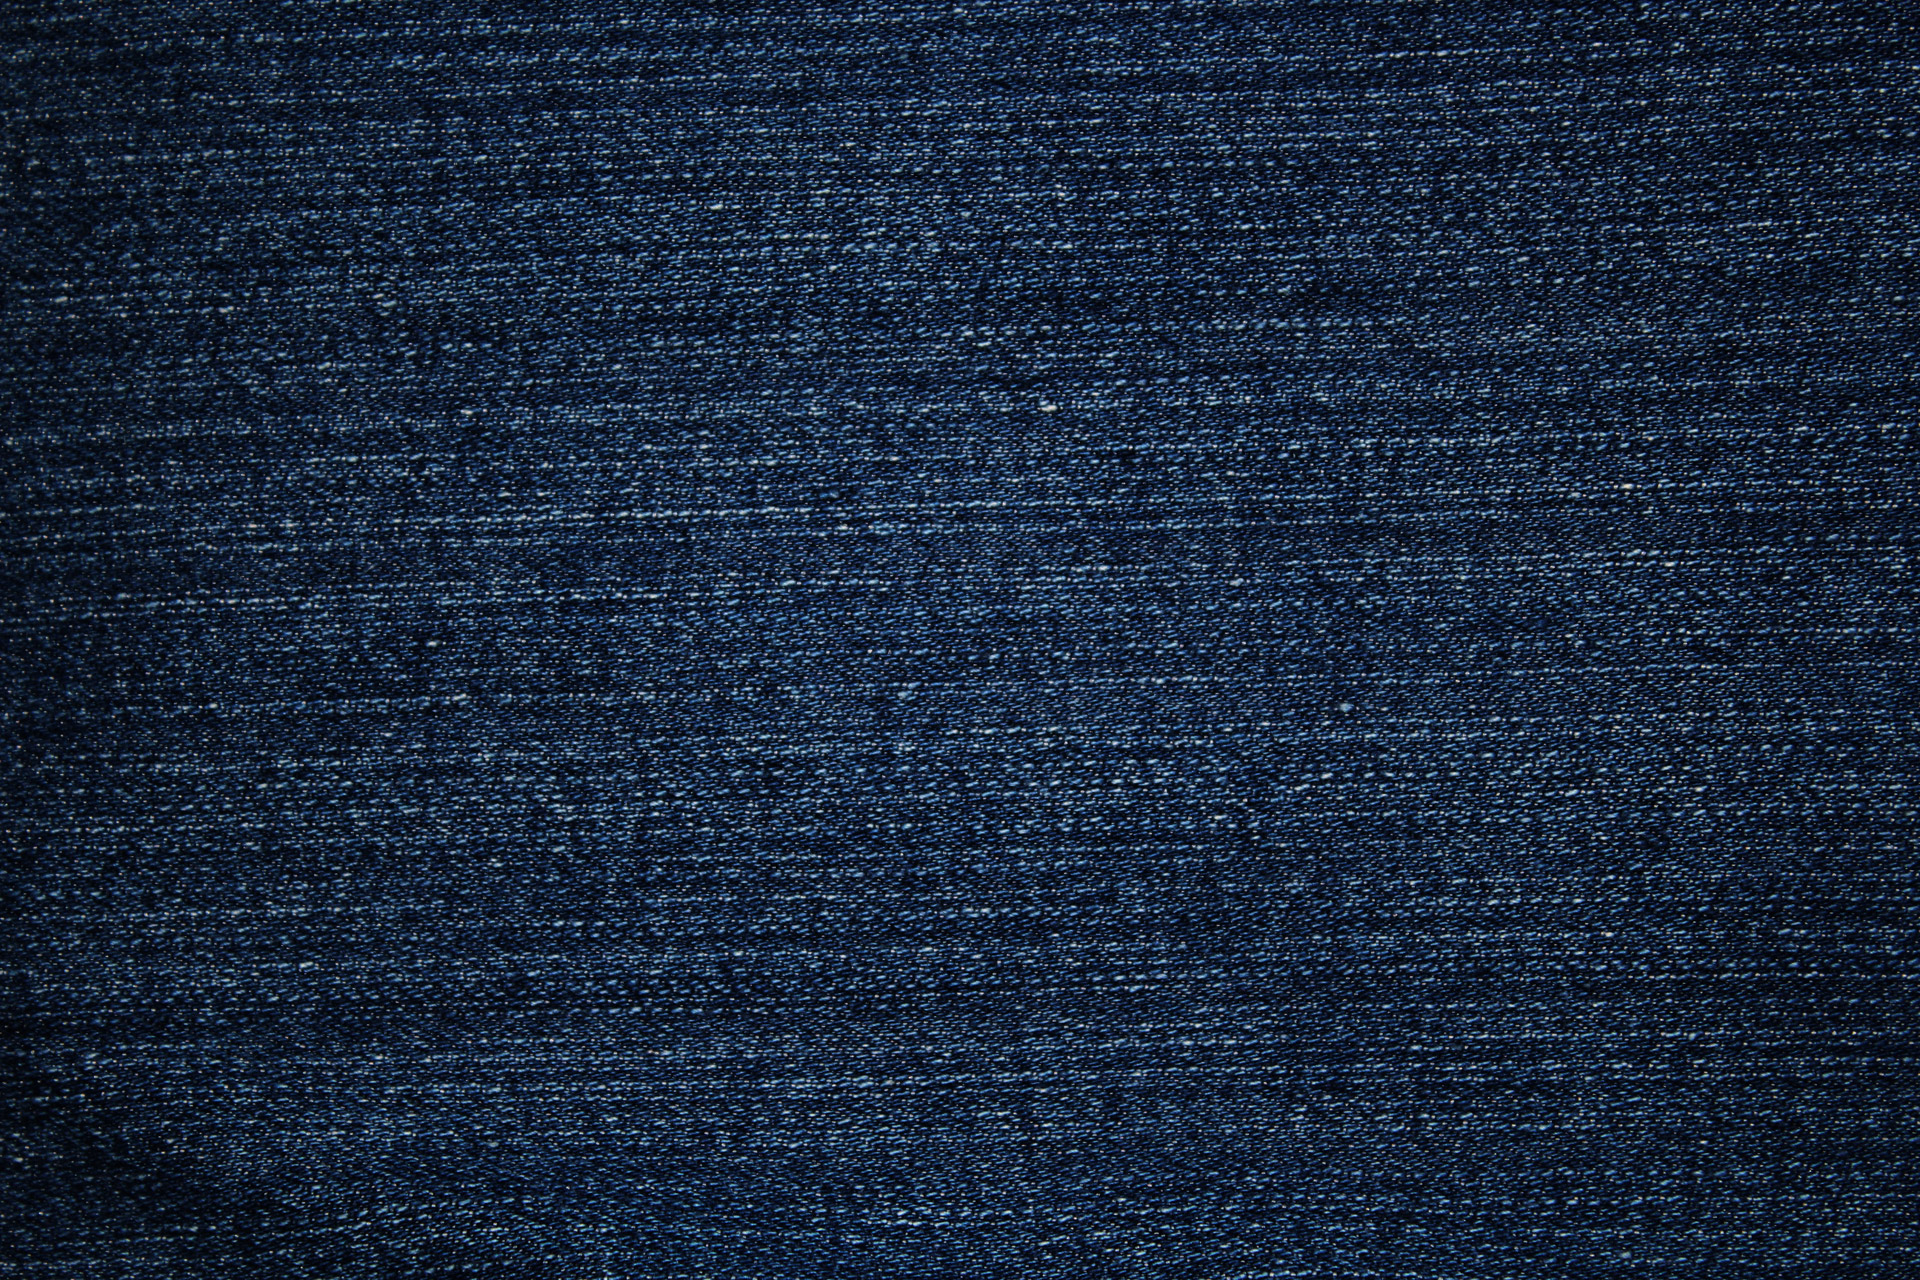 denim-background-3